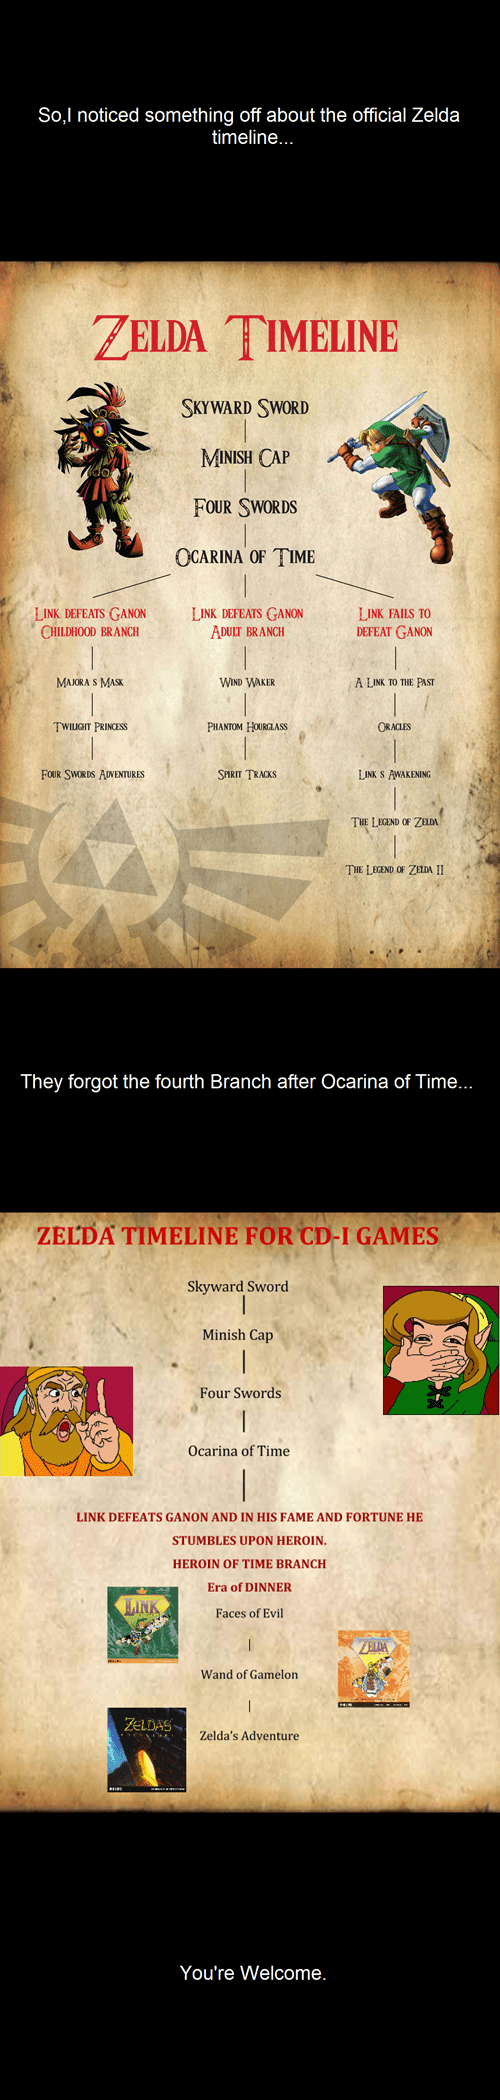 Hyrule Historia: Era of DINNER